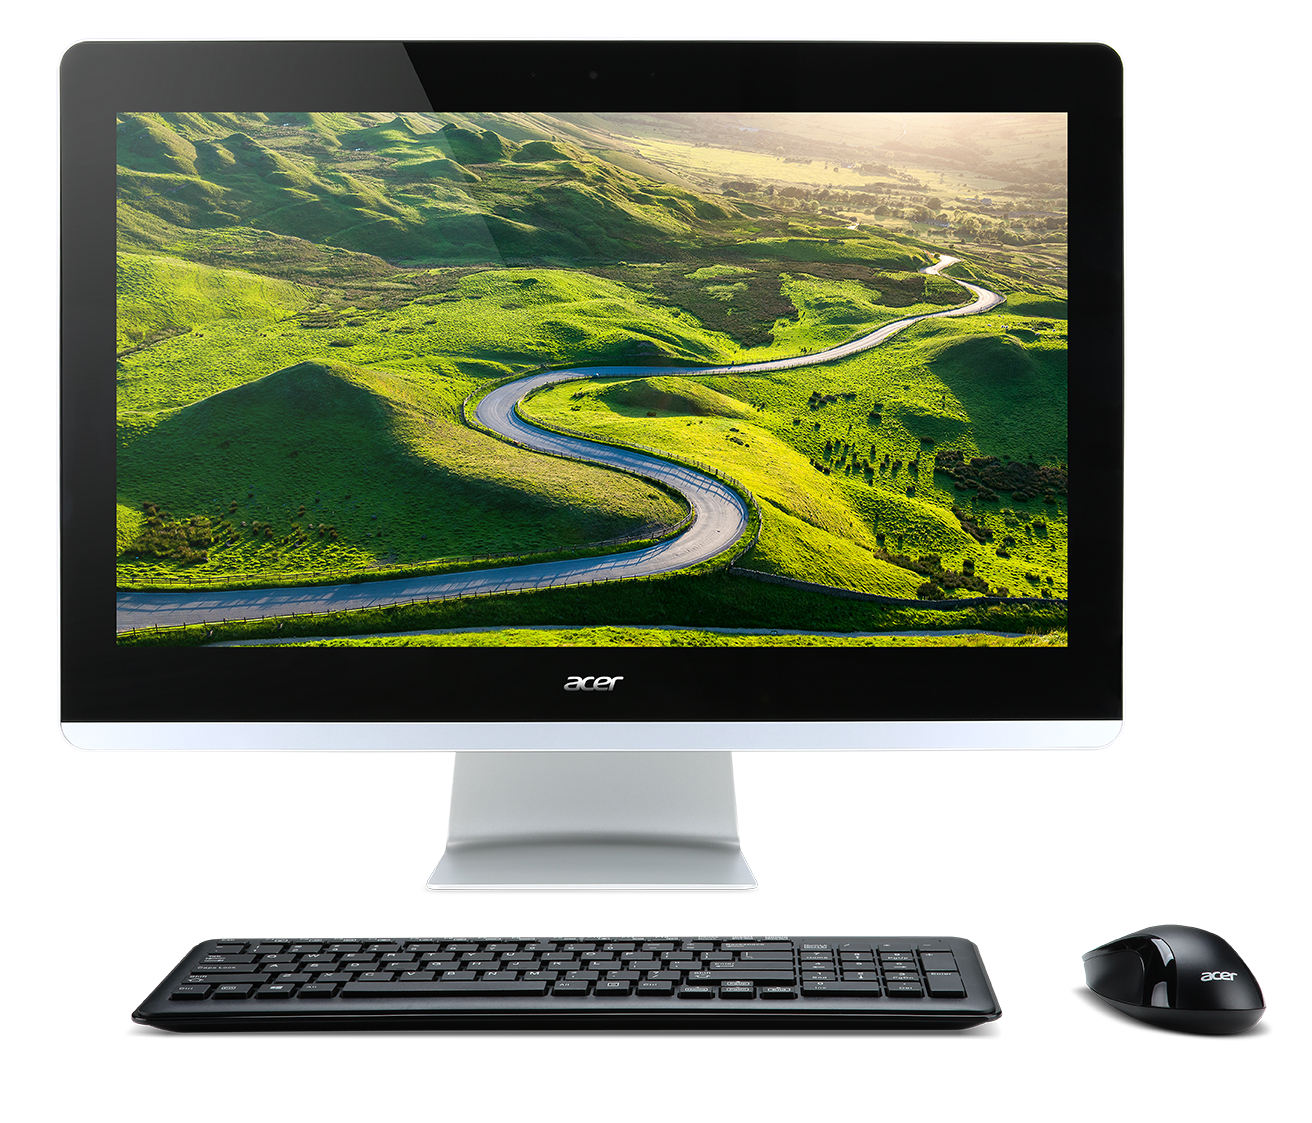 """Acer Aspire Z3-715 ALL-IN-ONE 23,8"""" LED/ Intel Core i3 7100T /4GB/1TB/DVDRW/ wifi + BT / W10 Home"""